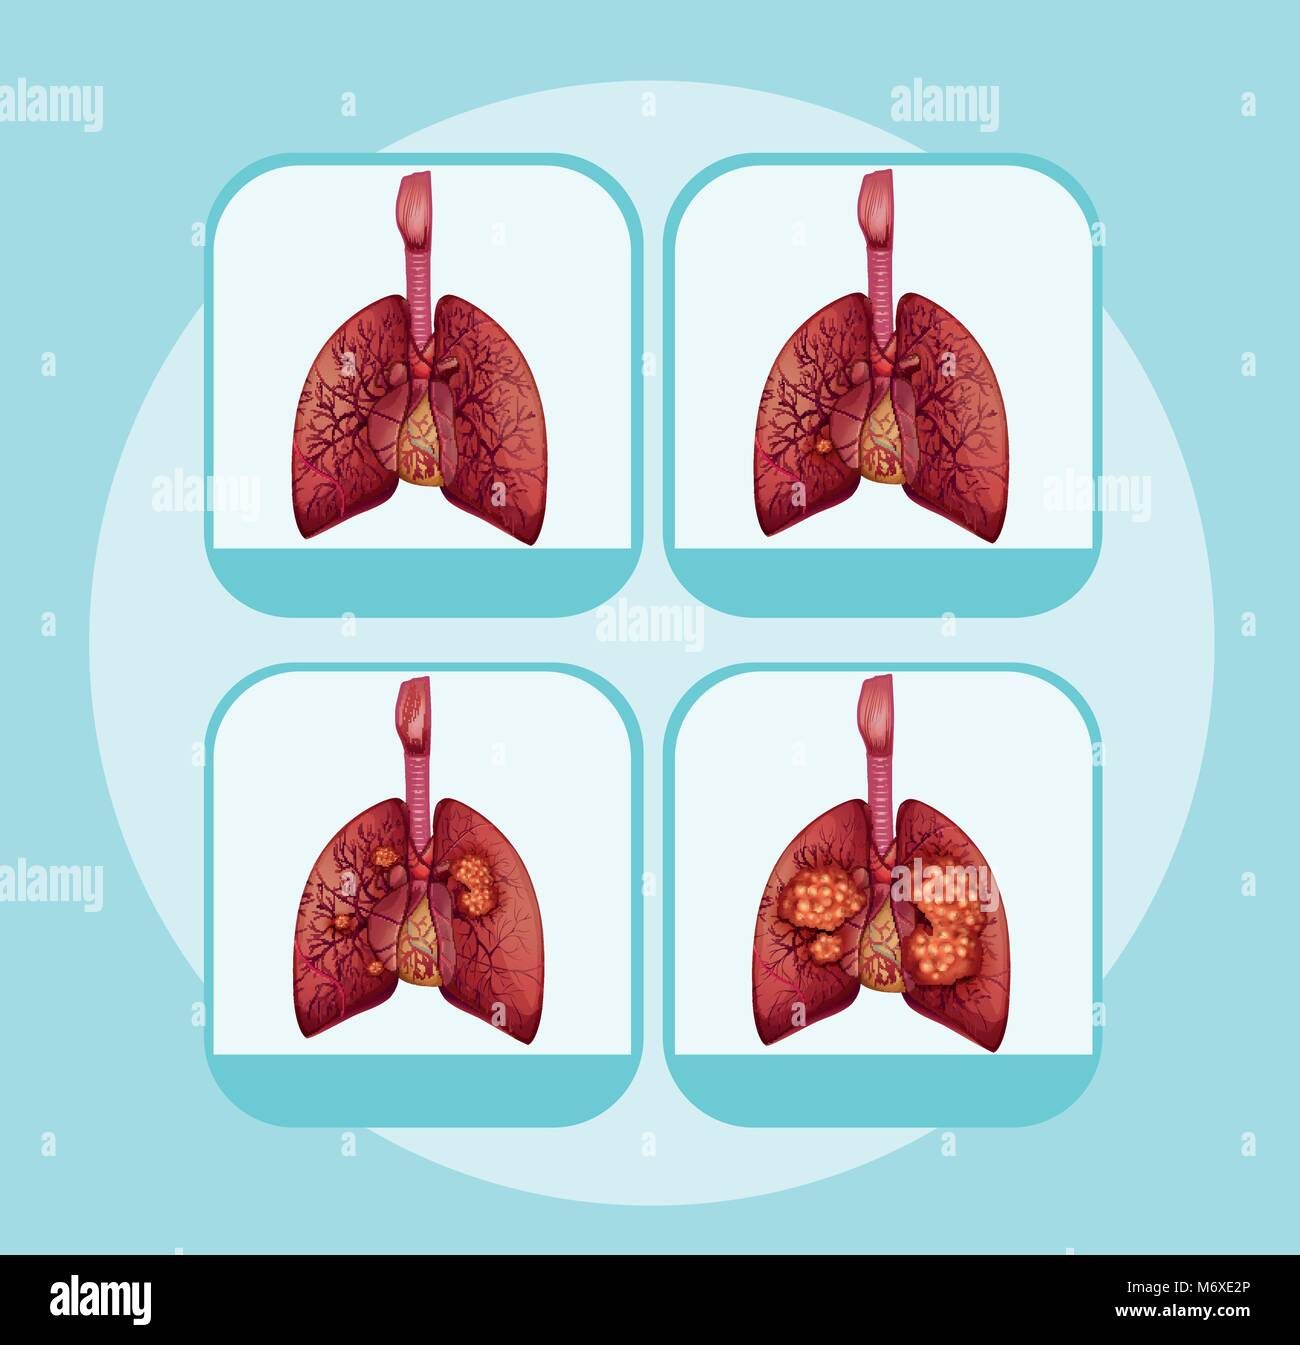 Diagram showing different stages of lung cancer illustration Stock ...